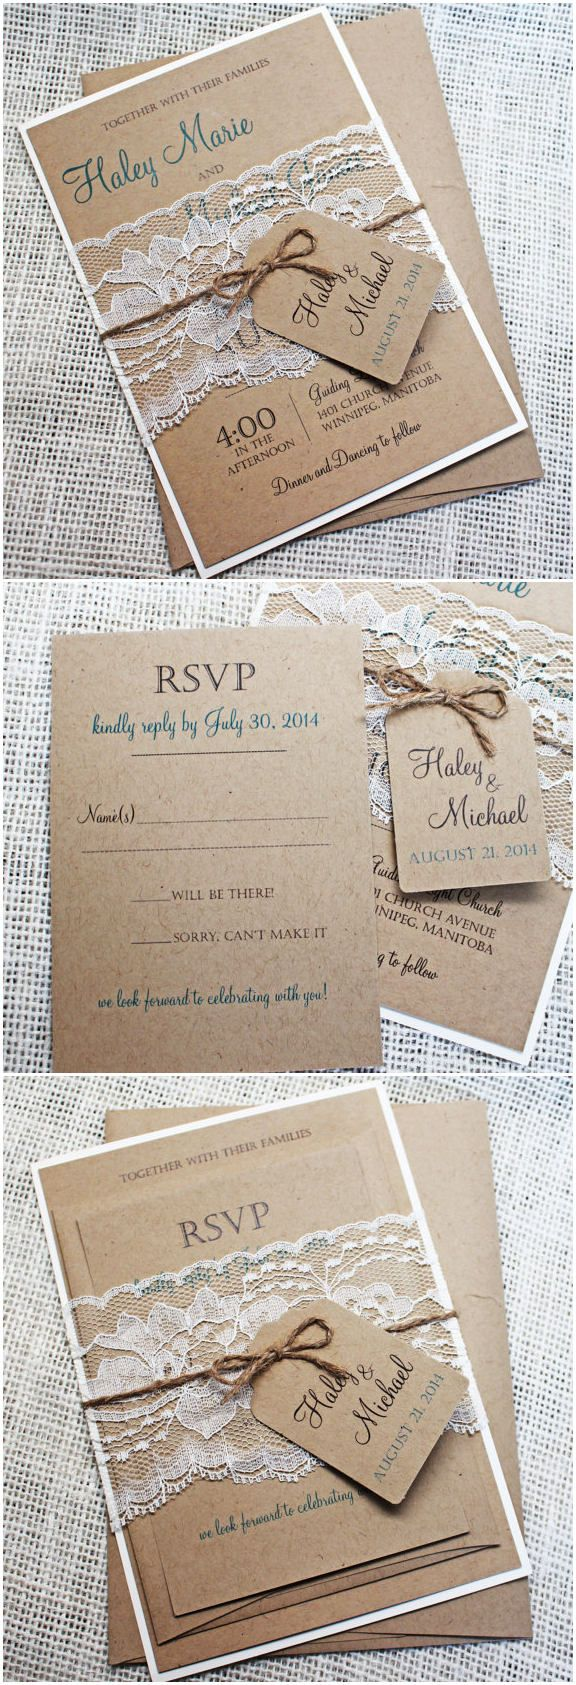 Top rustic wedding invitations to wow your guests wedding